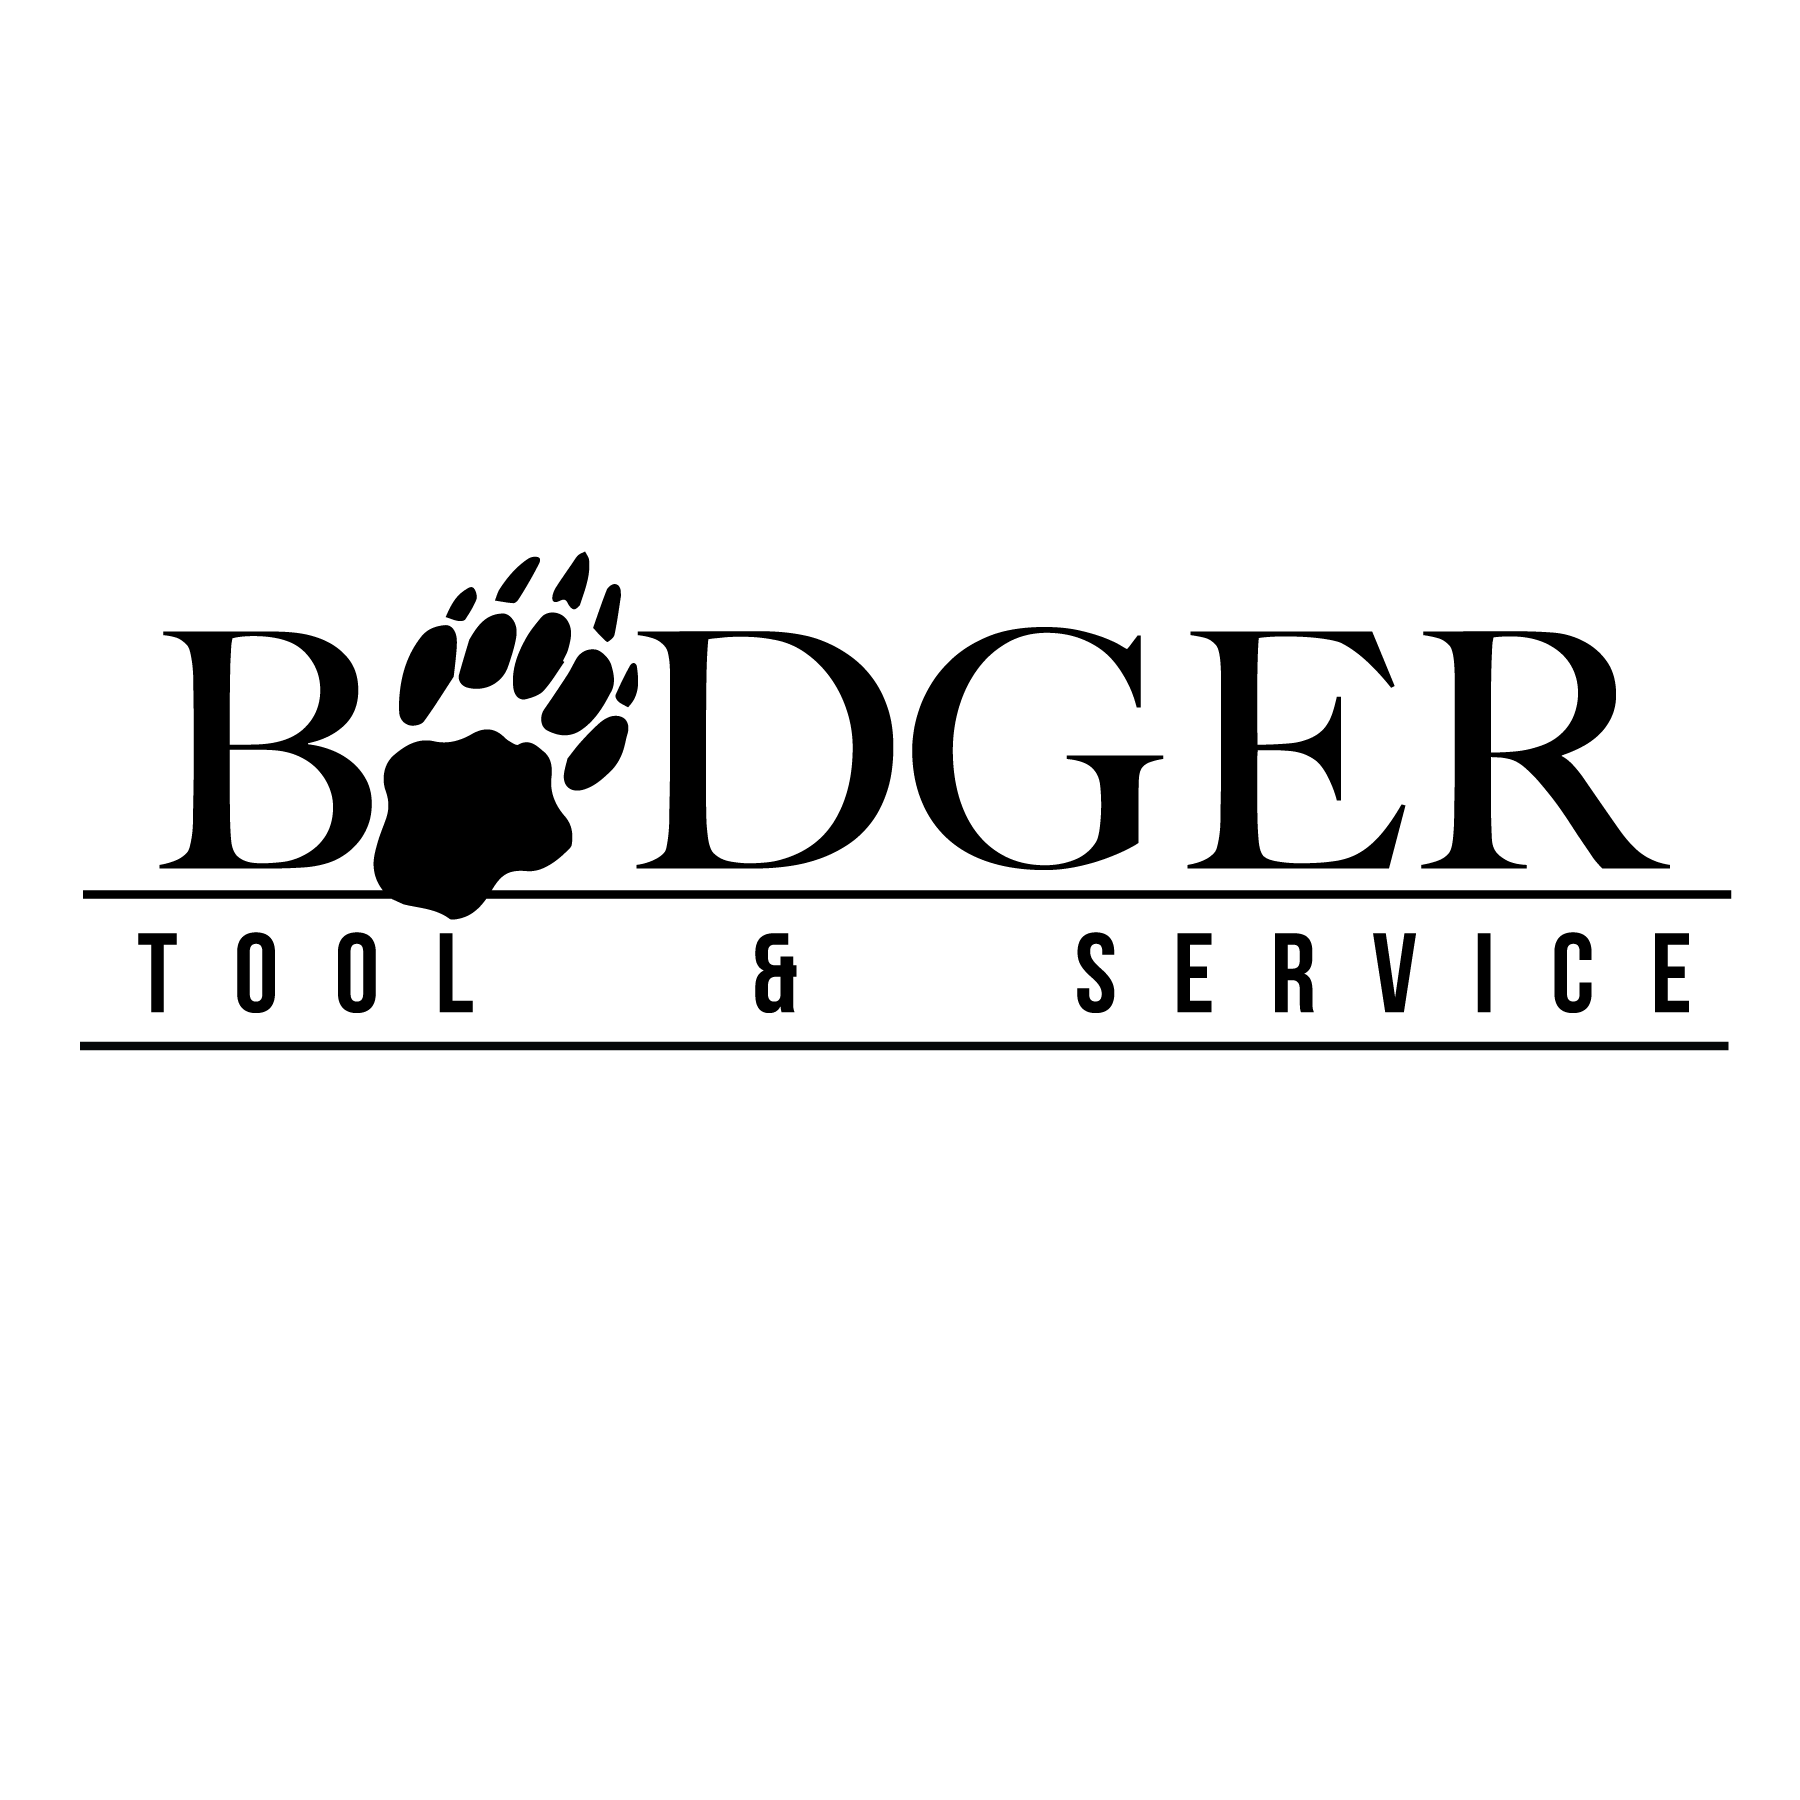 Badger Tool & Service   Badger Tool & Service is an end all be all handyman service based out of Meridian, Idaho.